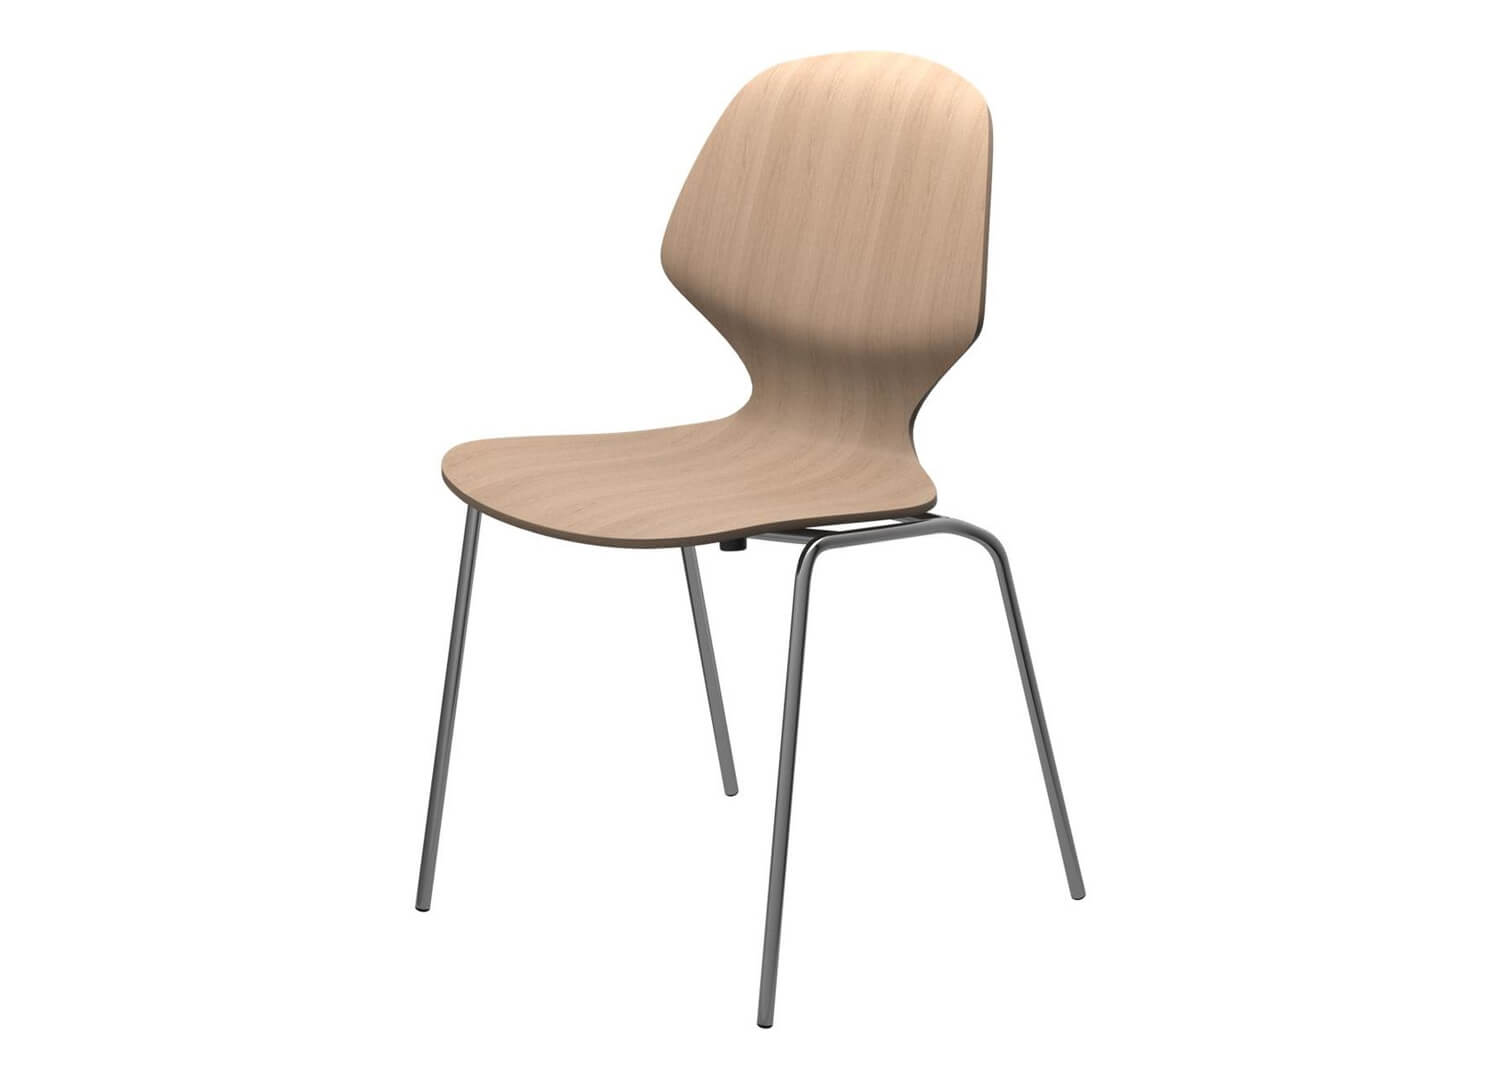 Peachy Florence Dining Chair By Boconcept Est Living Design Directory Caraccident5 Cool Chair Designs And Ideas Caraccident5Info